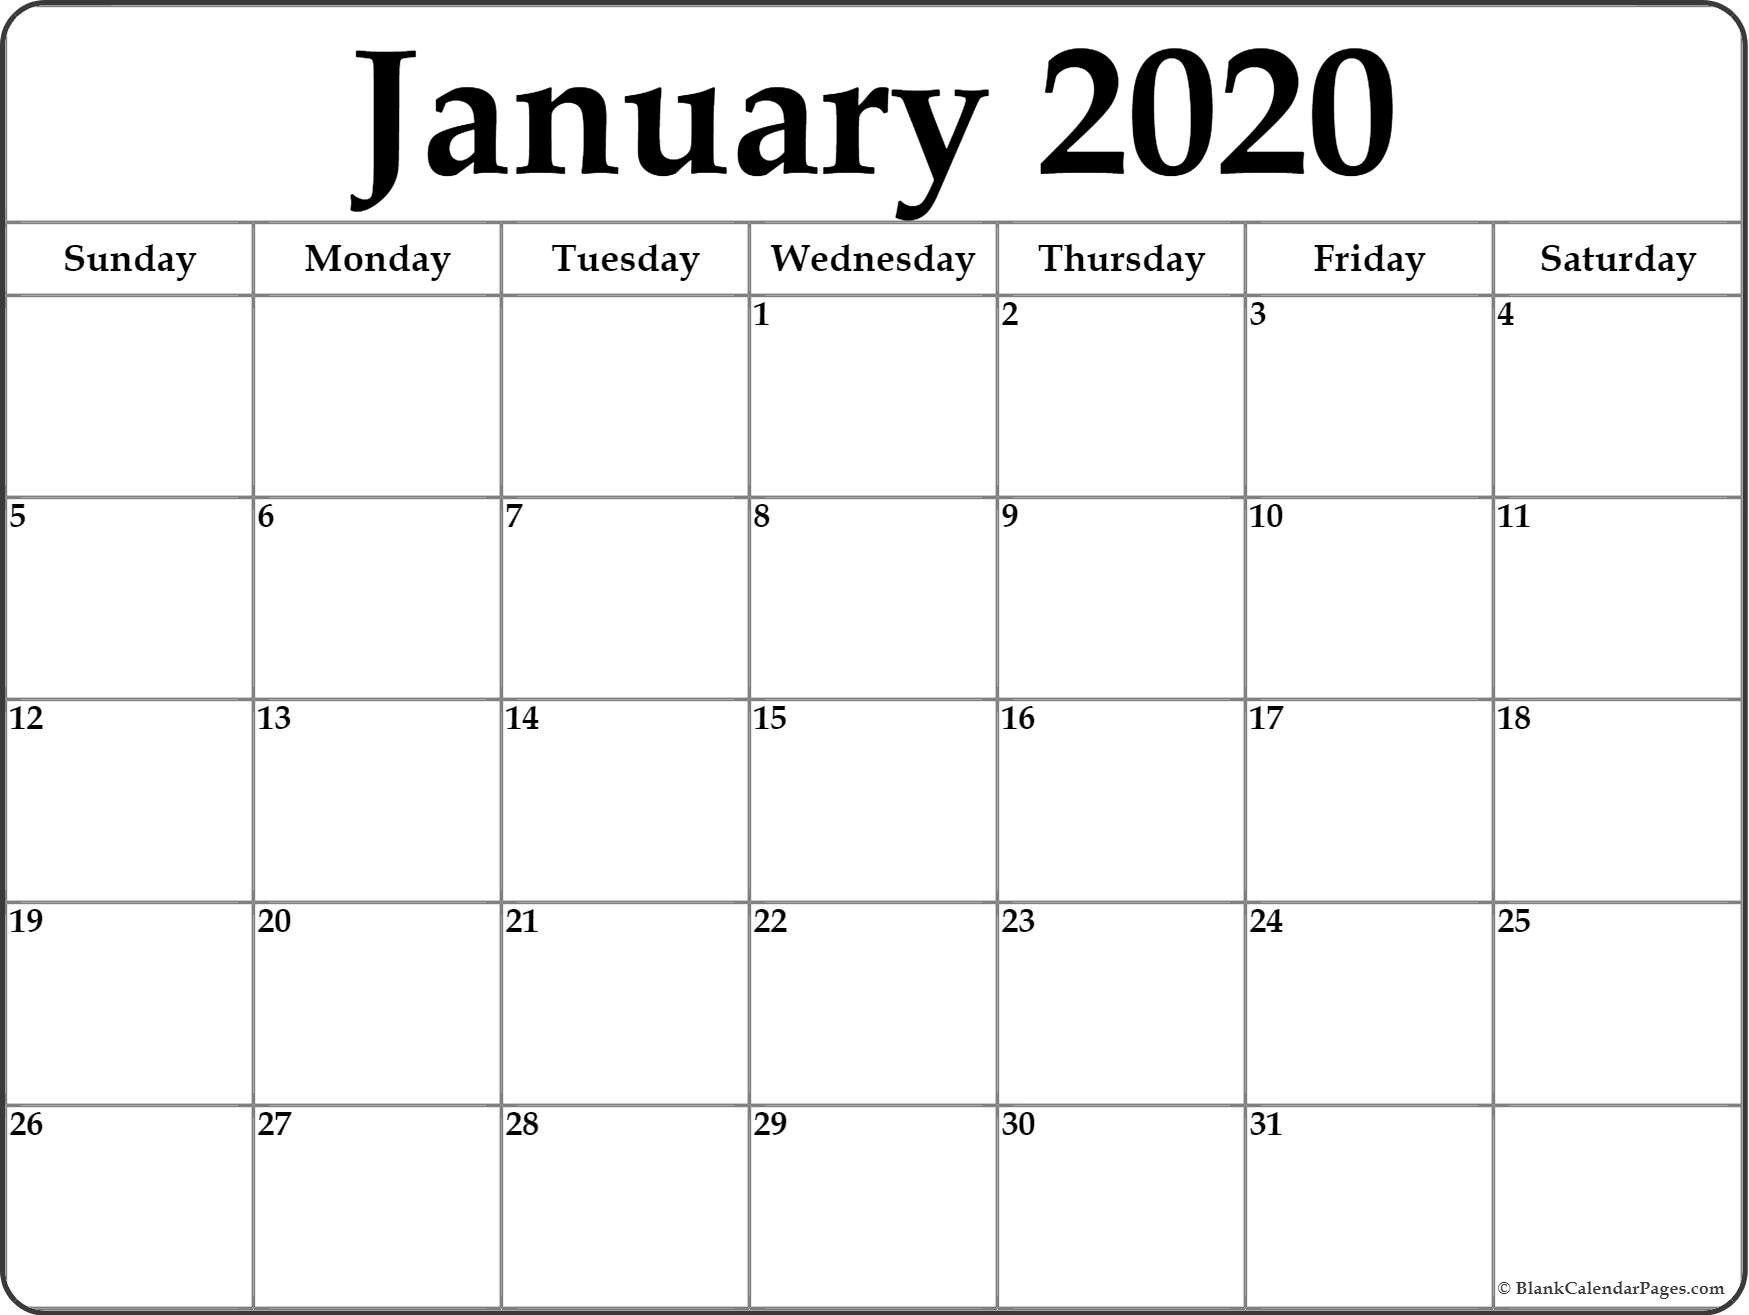 January 2020 Calendar | Free Printable Monthly Calendars  Full Page Blank Calendar Printable 2020